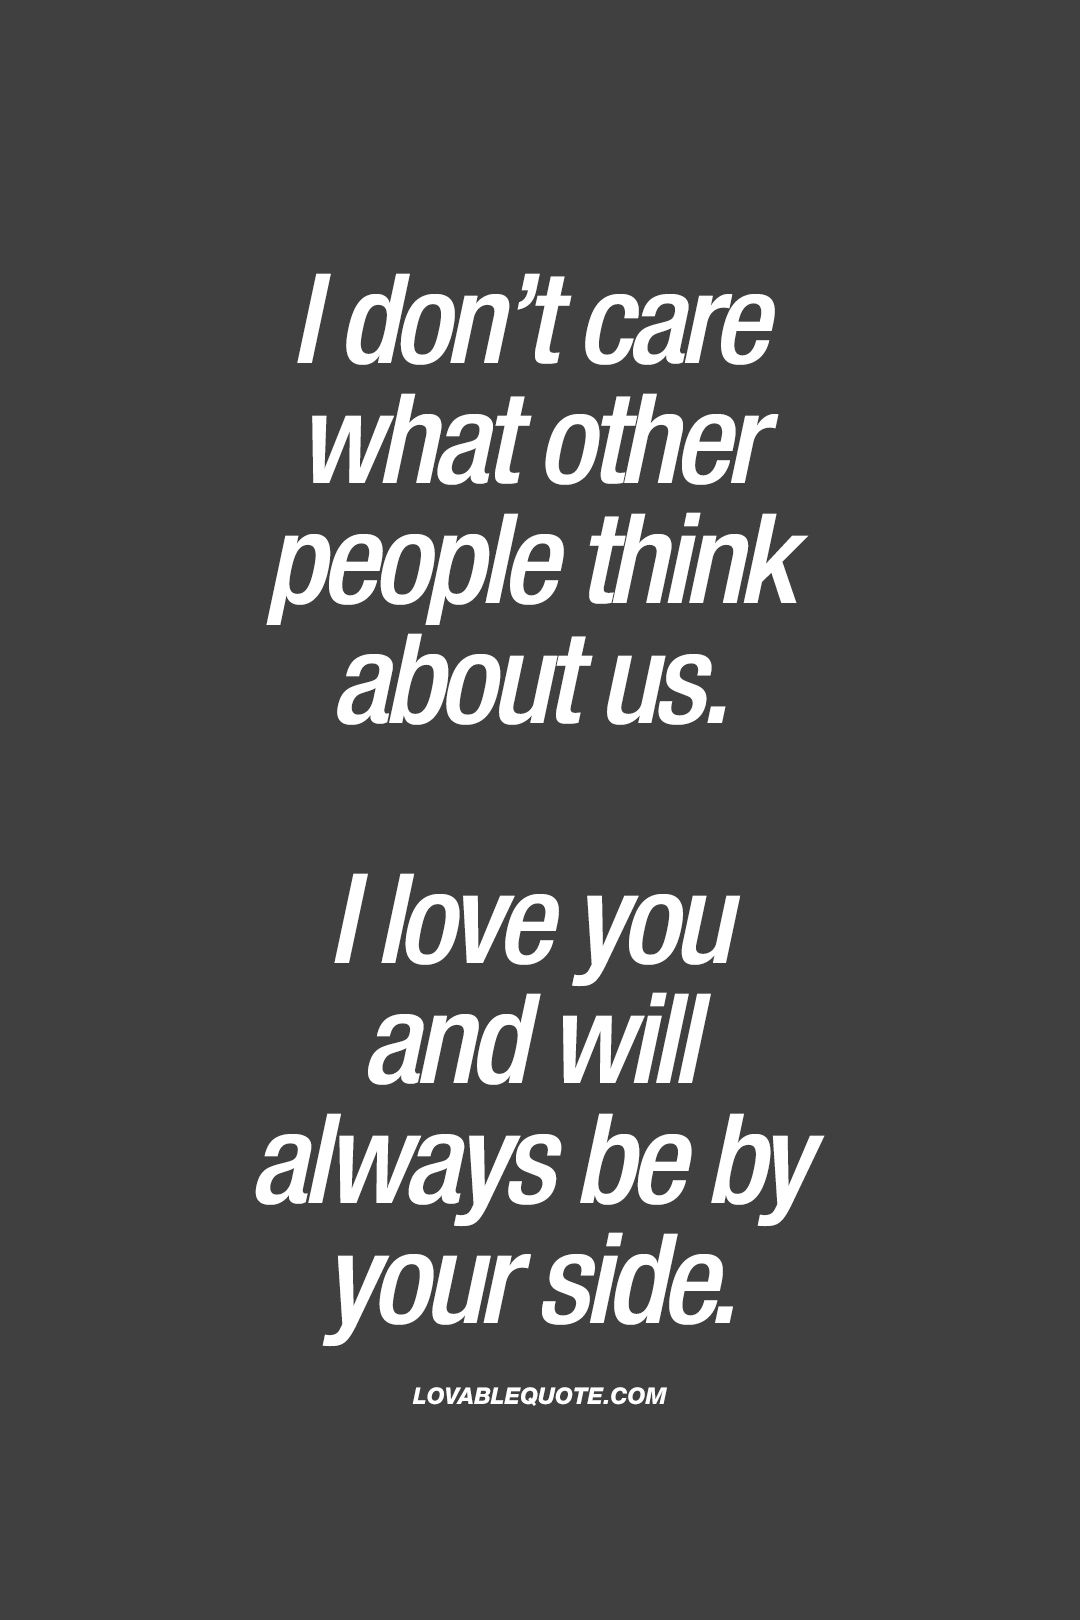 I don t care what other people think about us I love you and will always be by your side Unless you no longer want me around then I will remain in the